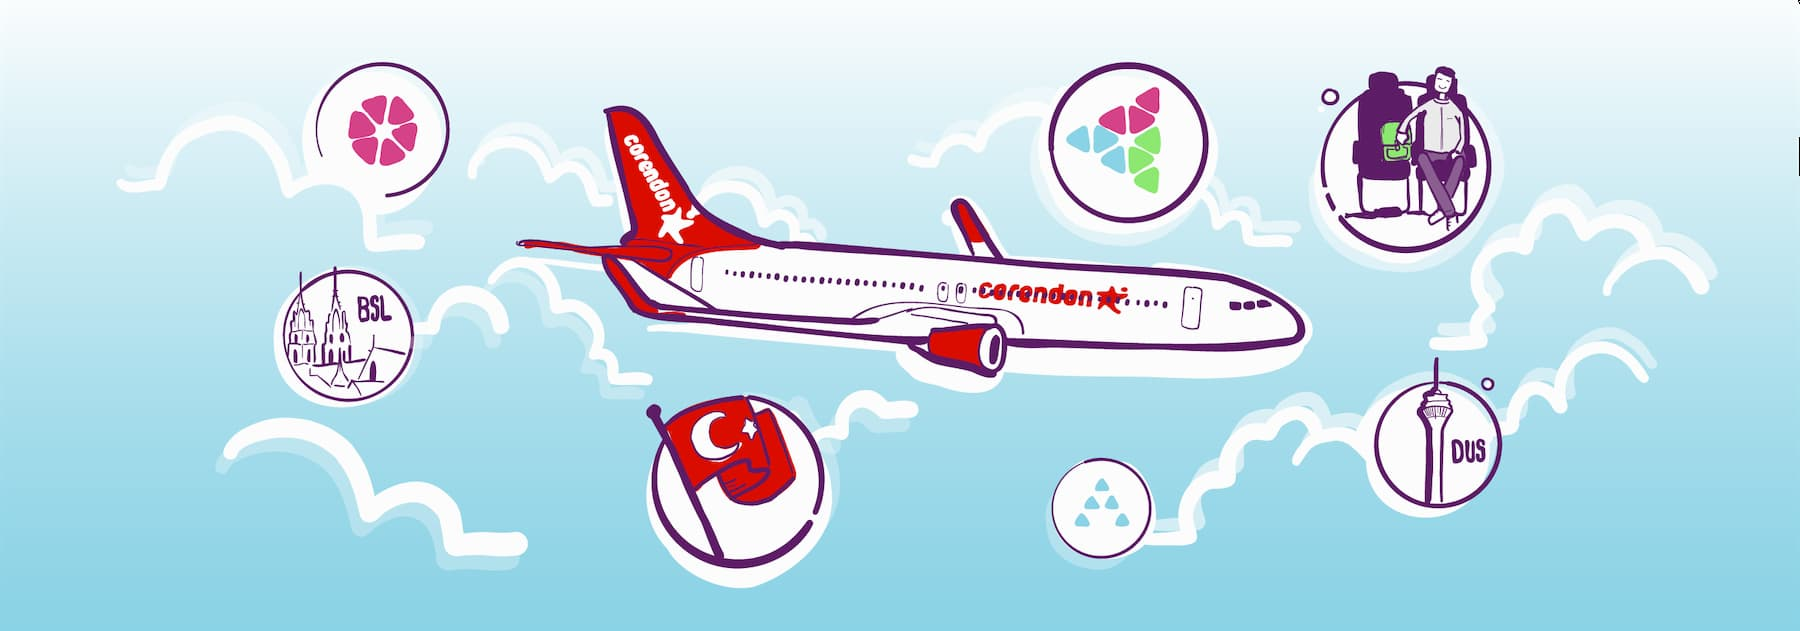 Corendon Airlines interview with CFO Olcay Türker on expansion and process transformation.